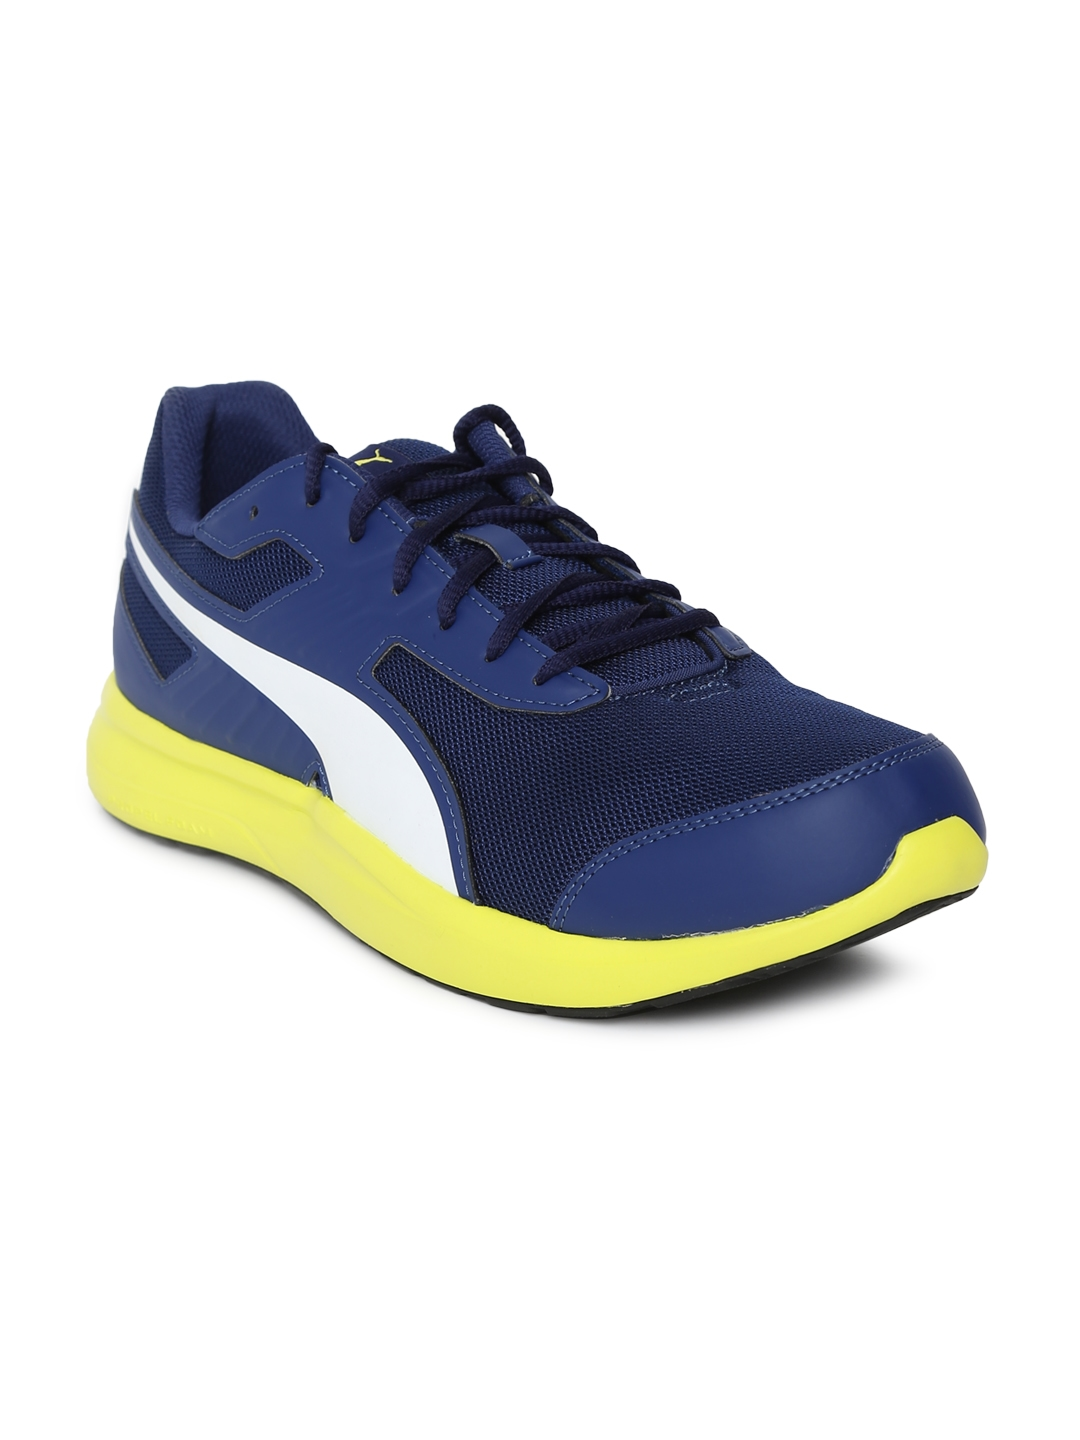 f463bf9a0316fd Buy Puma Unisex Navy Blue Escaper Mesh IDP Sneakers - Casual Shoes ...